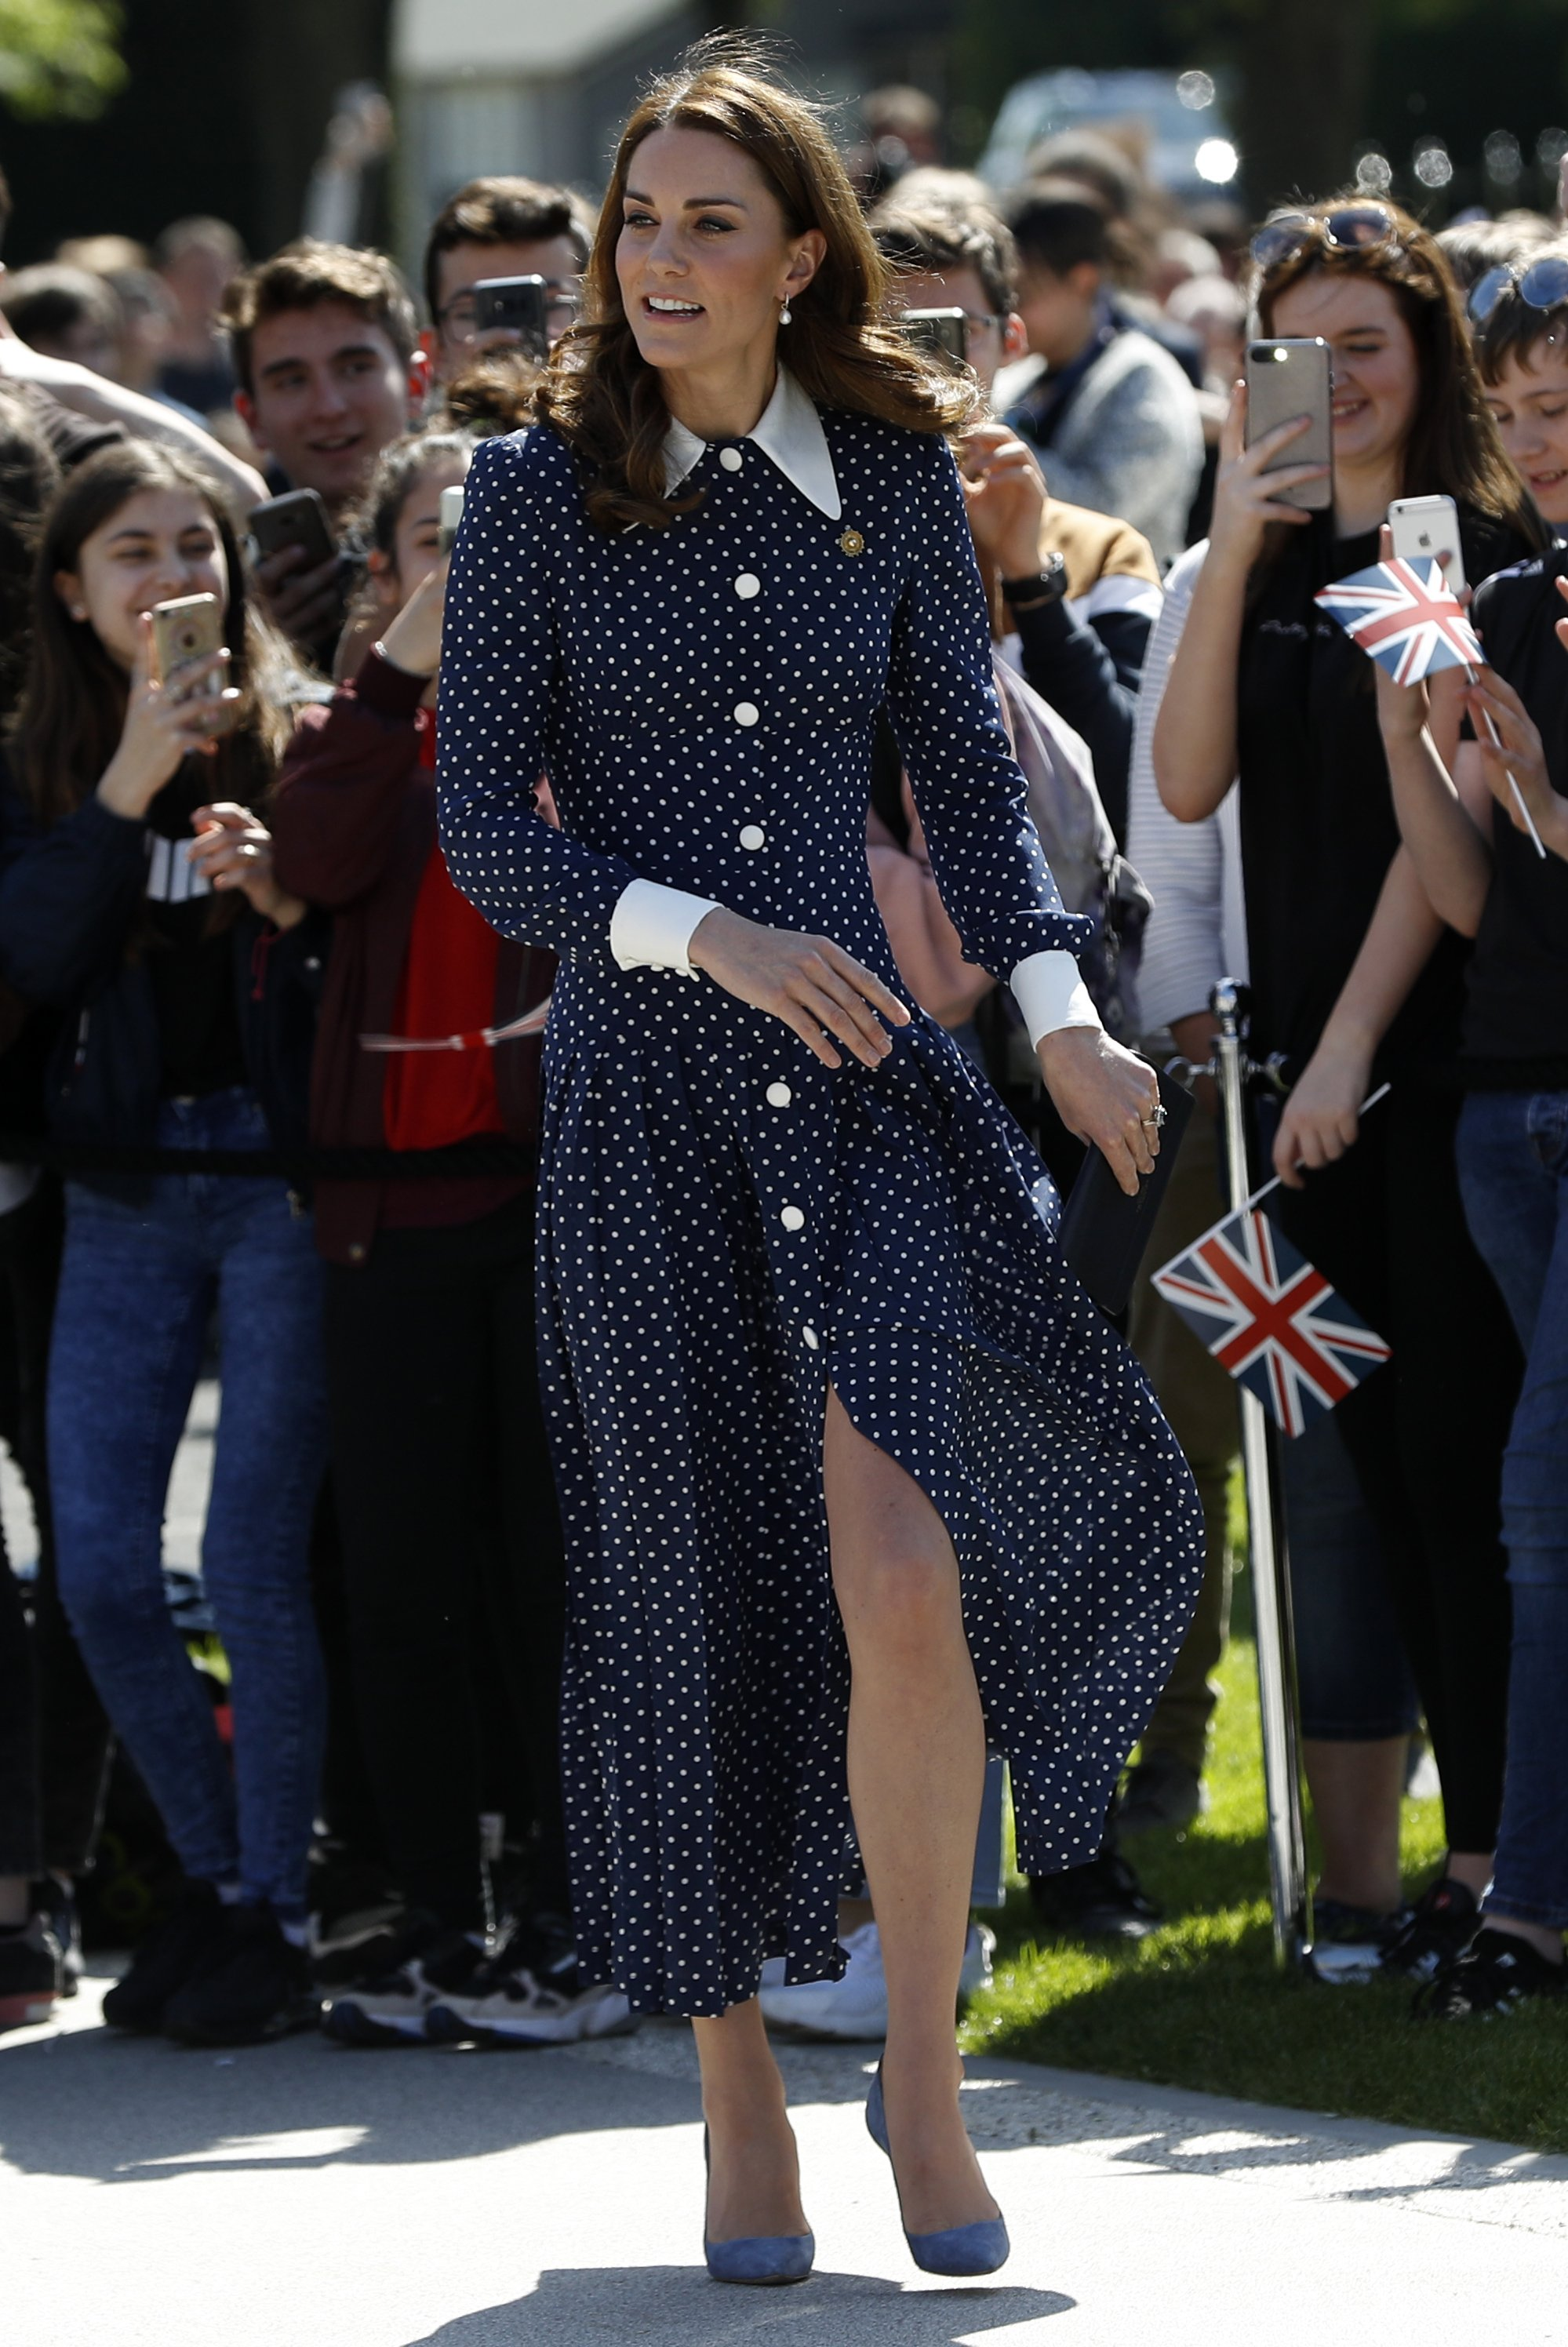 Kate Middleton attends D-Day in Bletchly Park on May 14, 2019 | Photo: Getty Images